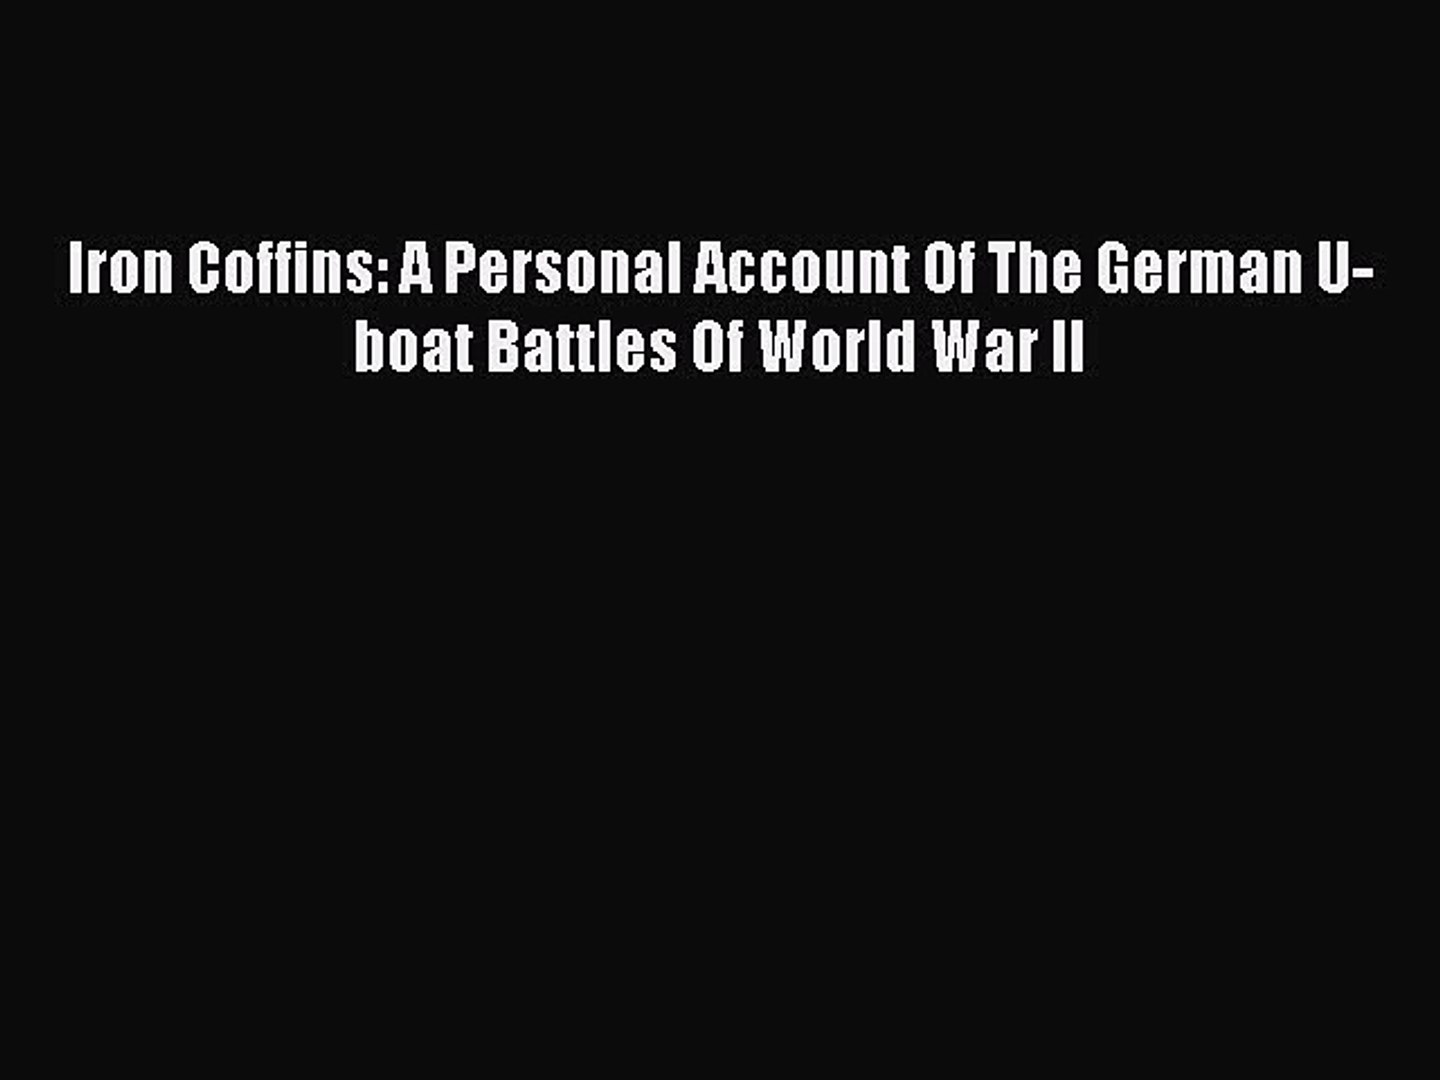 A Personal Account Of The German U-boat Battles Of World War II Iron Coffins